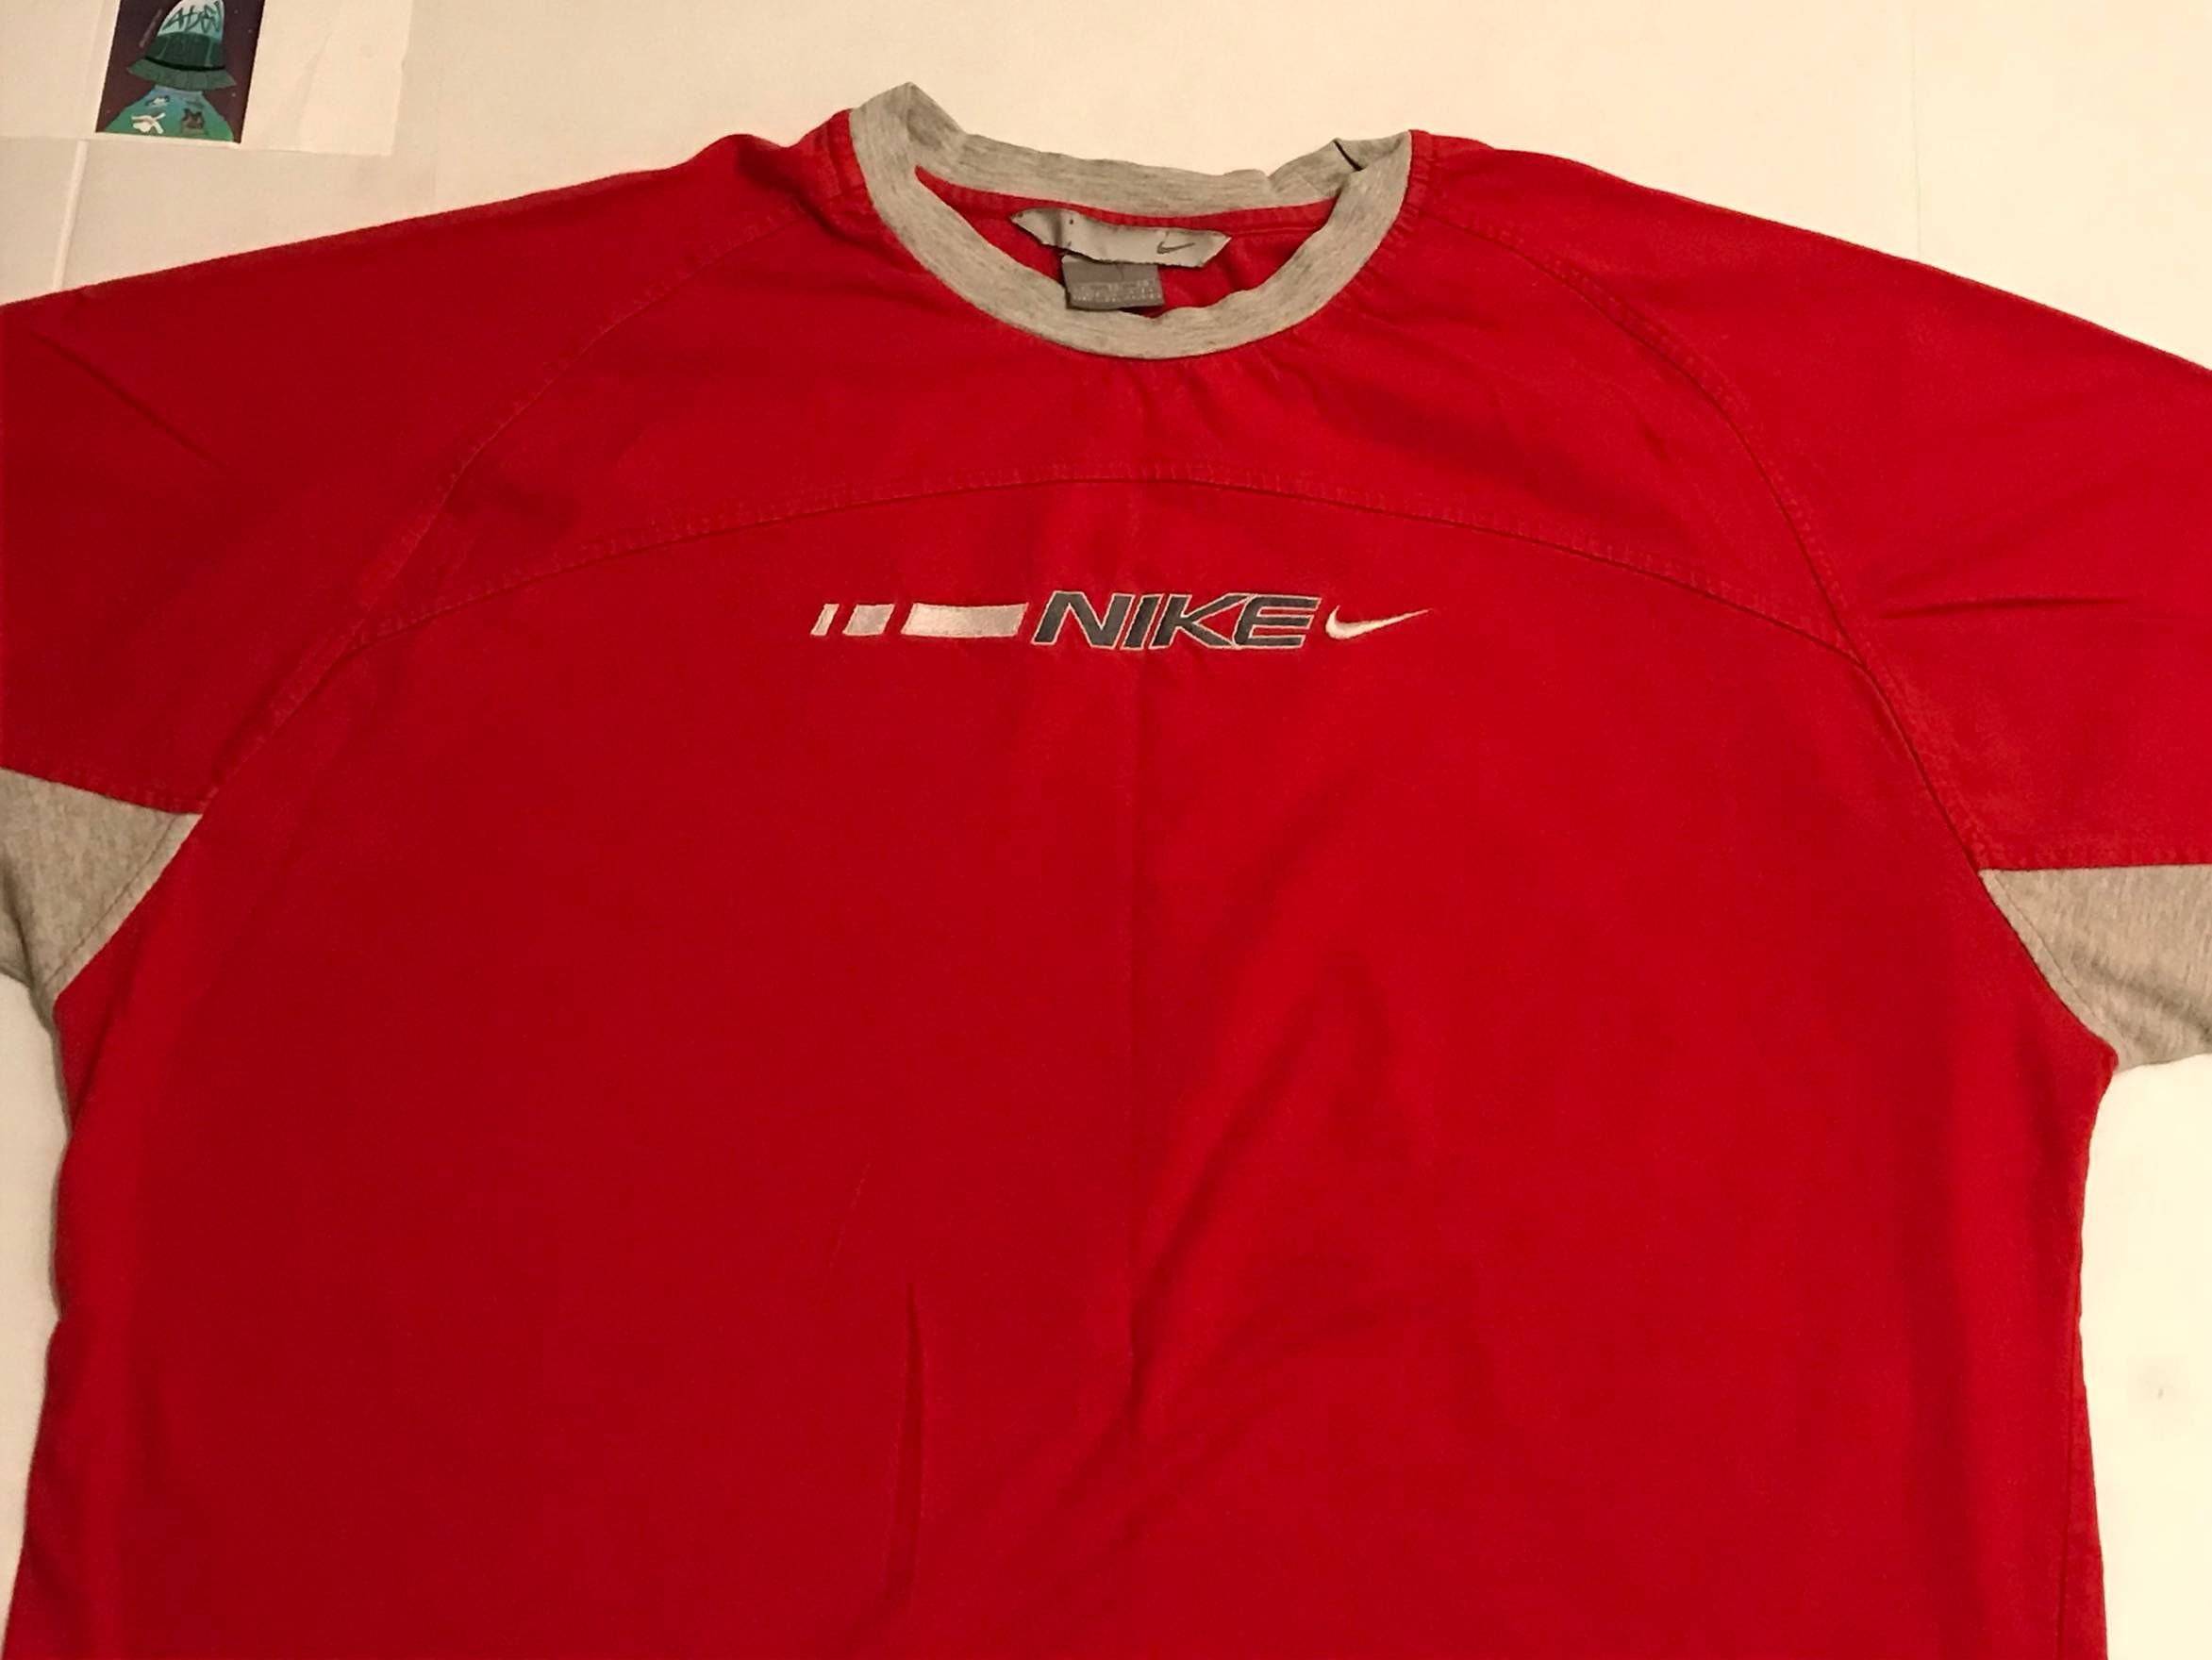 fff5d44e82d6 Nike 90s Vintage NIKE Embroidered T-Shirt Red Size US XL   EU 56   4 ...